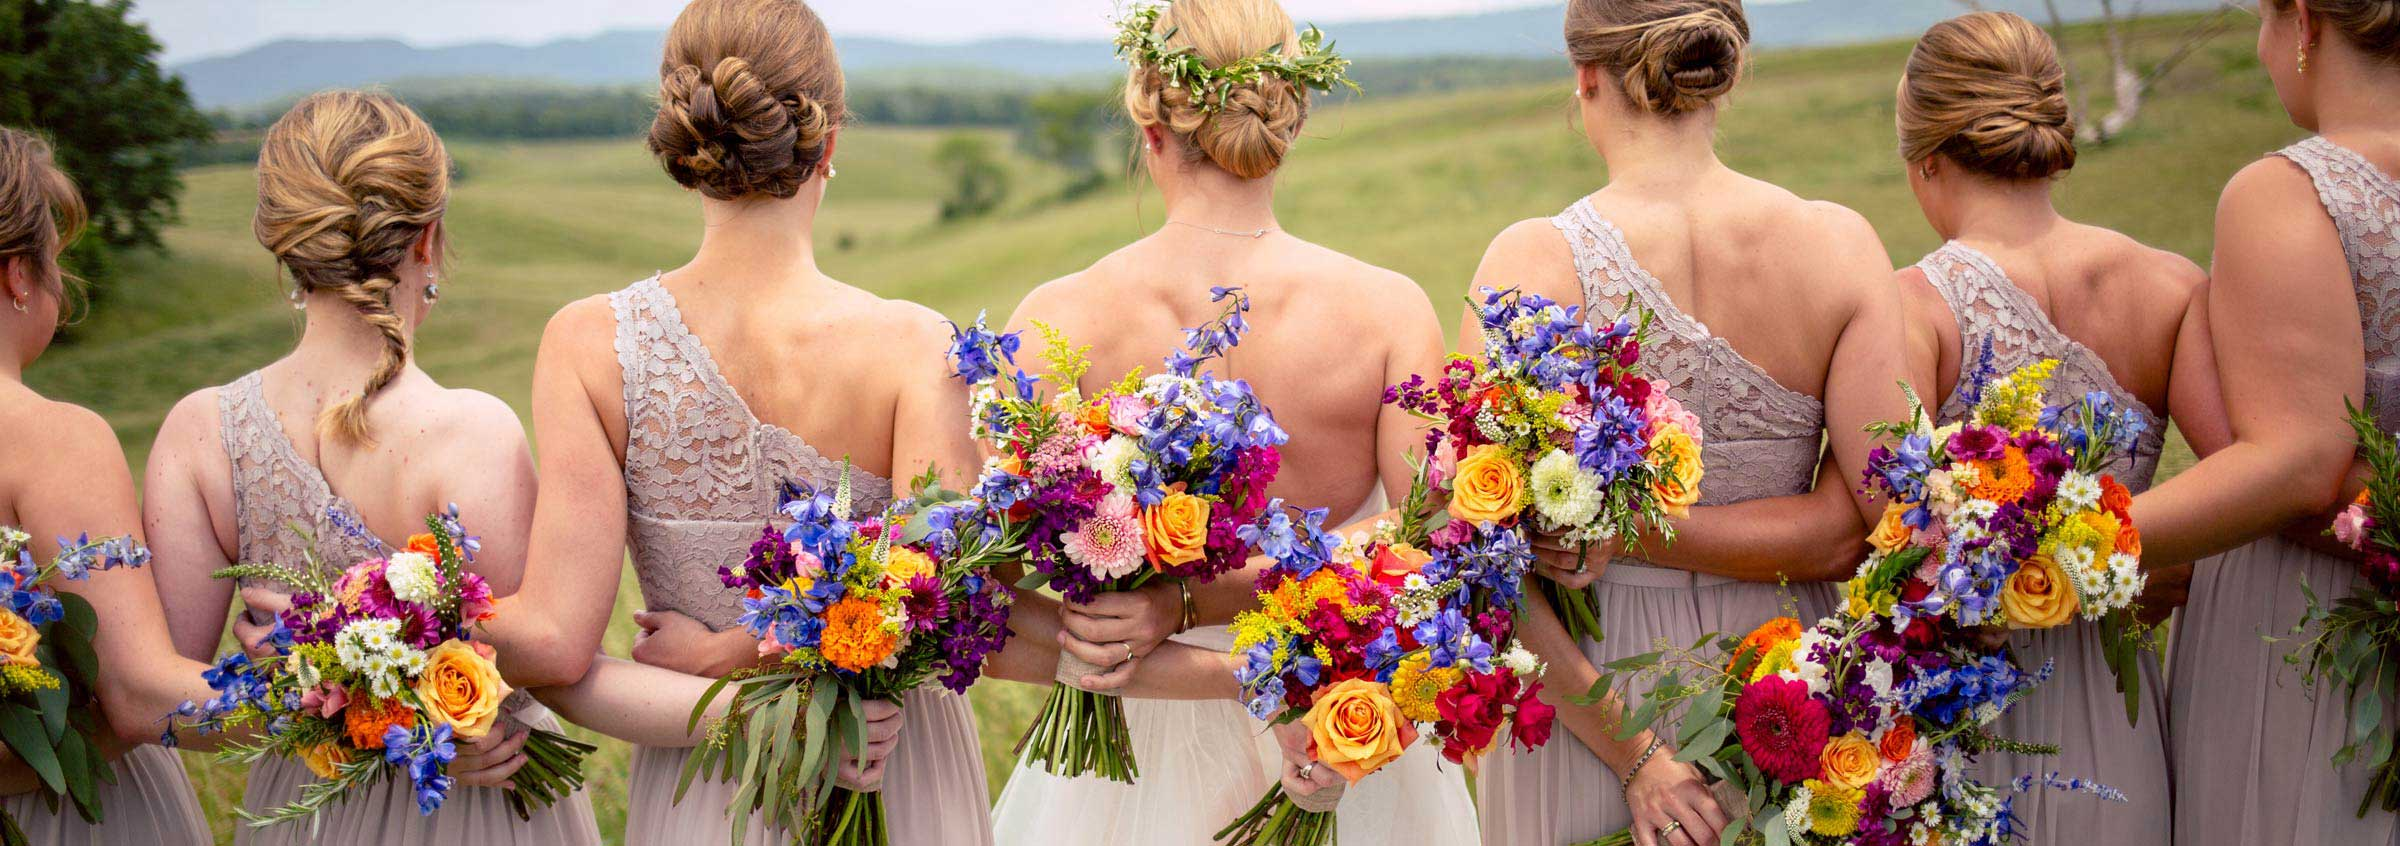 Colorful wedding flower bouquets for the bride and bridesmaids at an outdoor wedding